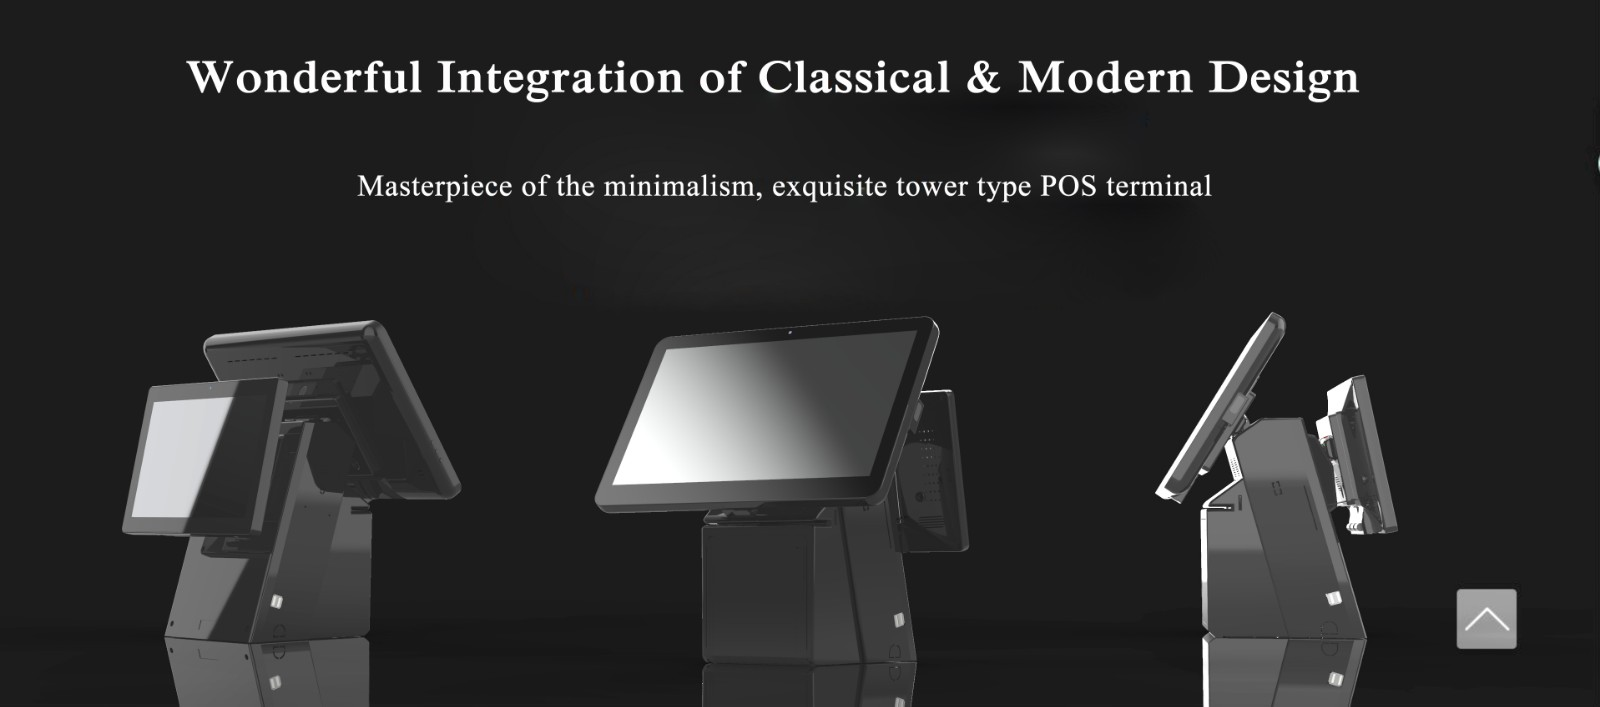 PTKSAI-Windows All in one POS Terminal with Integrated Thermal Printer